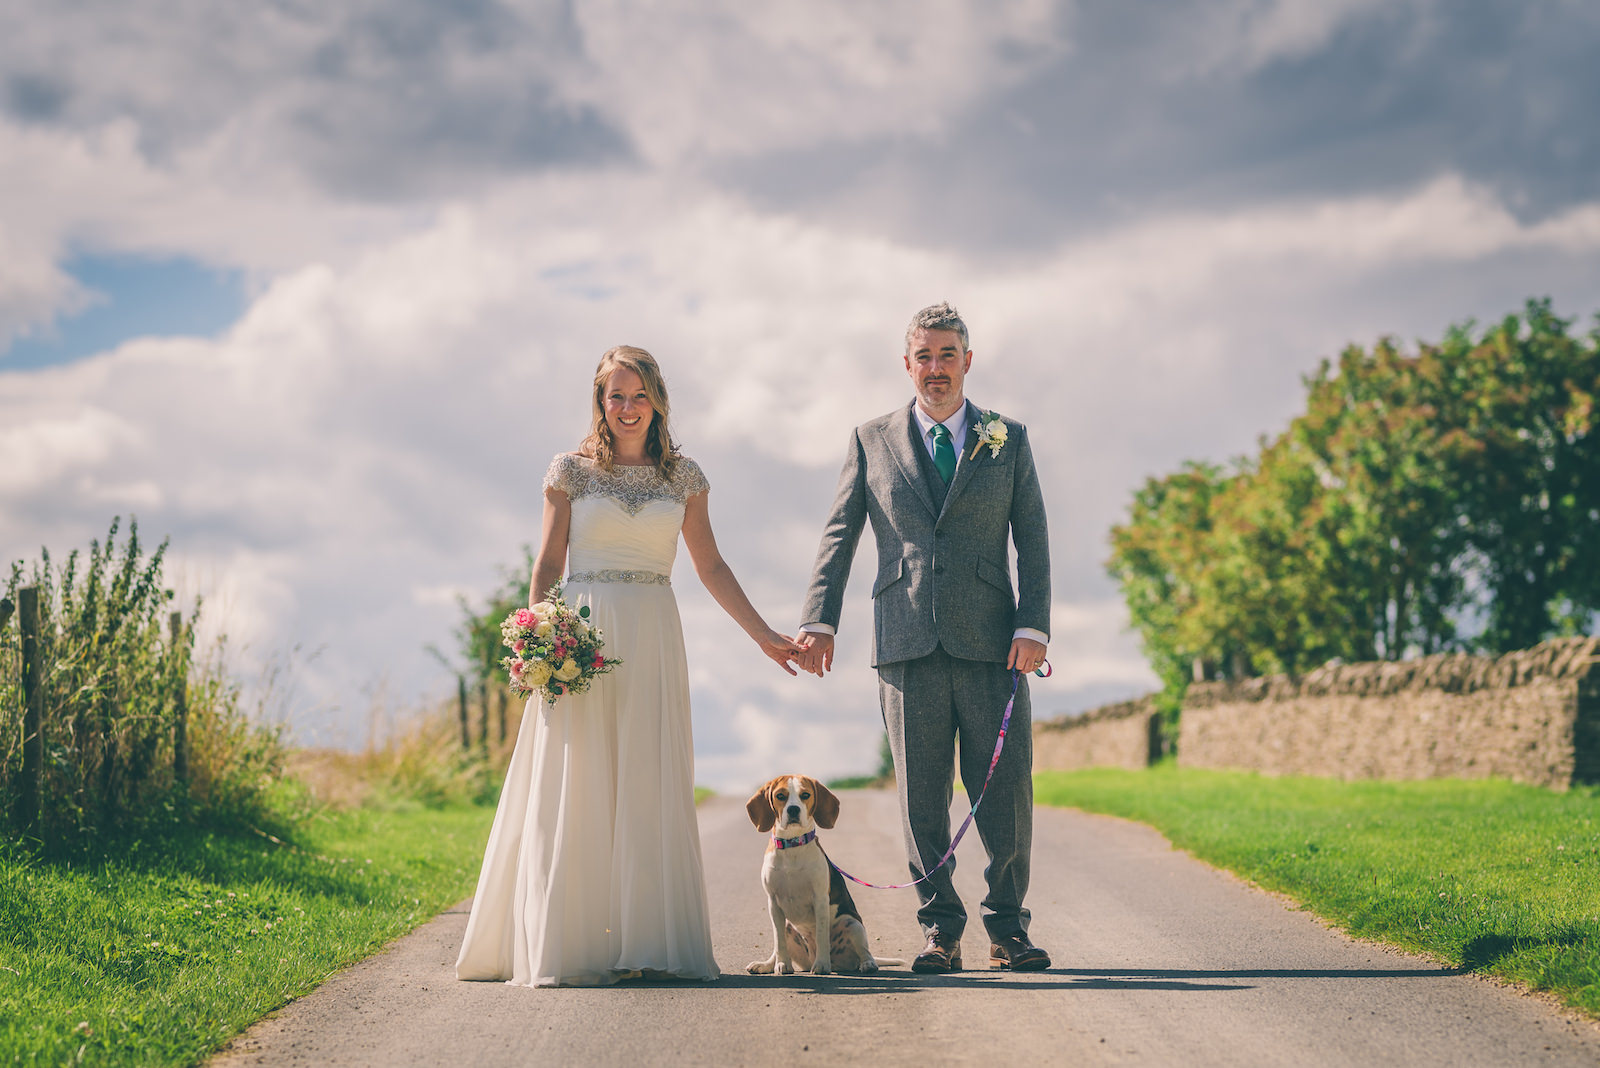 Rob Tarren Wedding Photography Review – Part Two